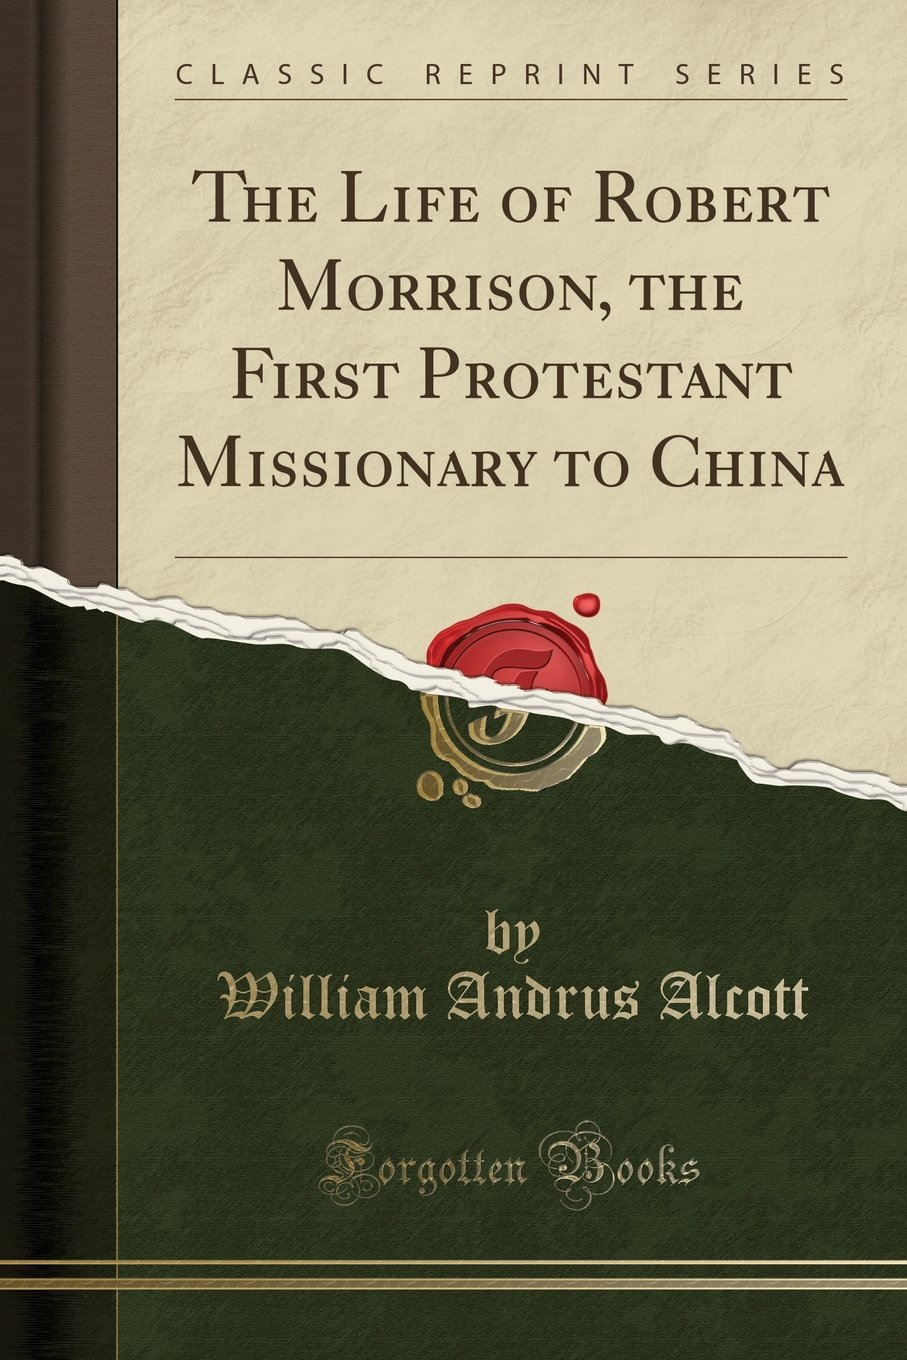 The Life of Robert Morrison, the First Protestant Missionary to China (Classic Reprint)